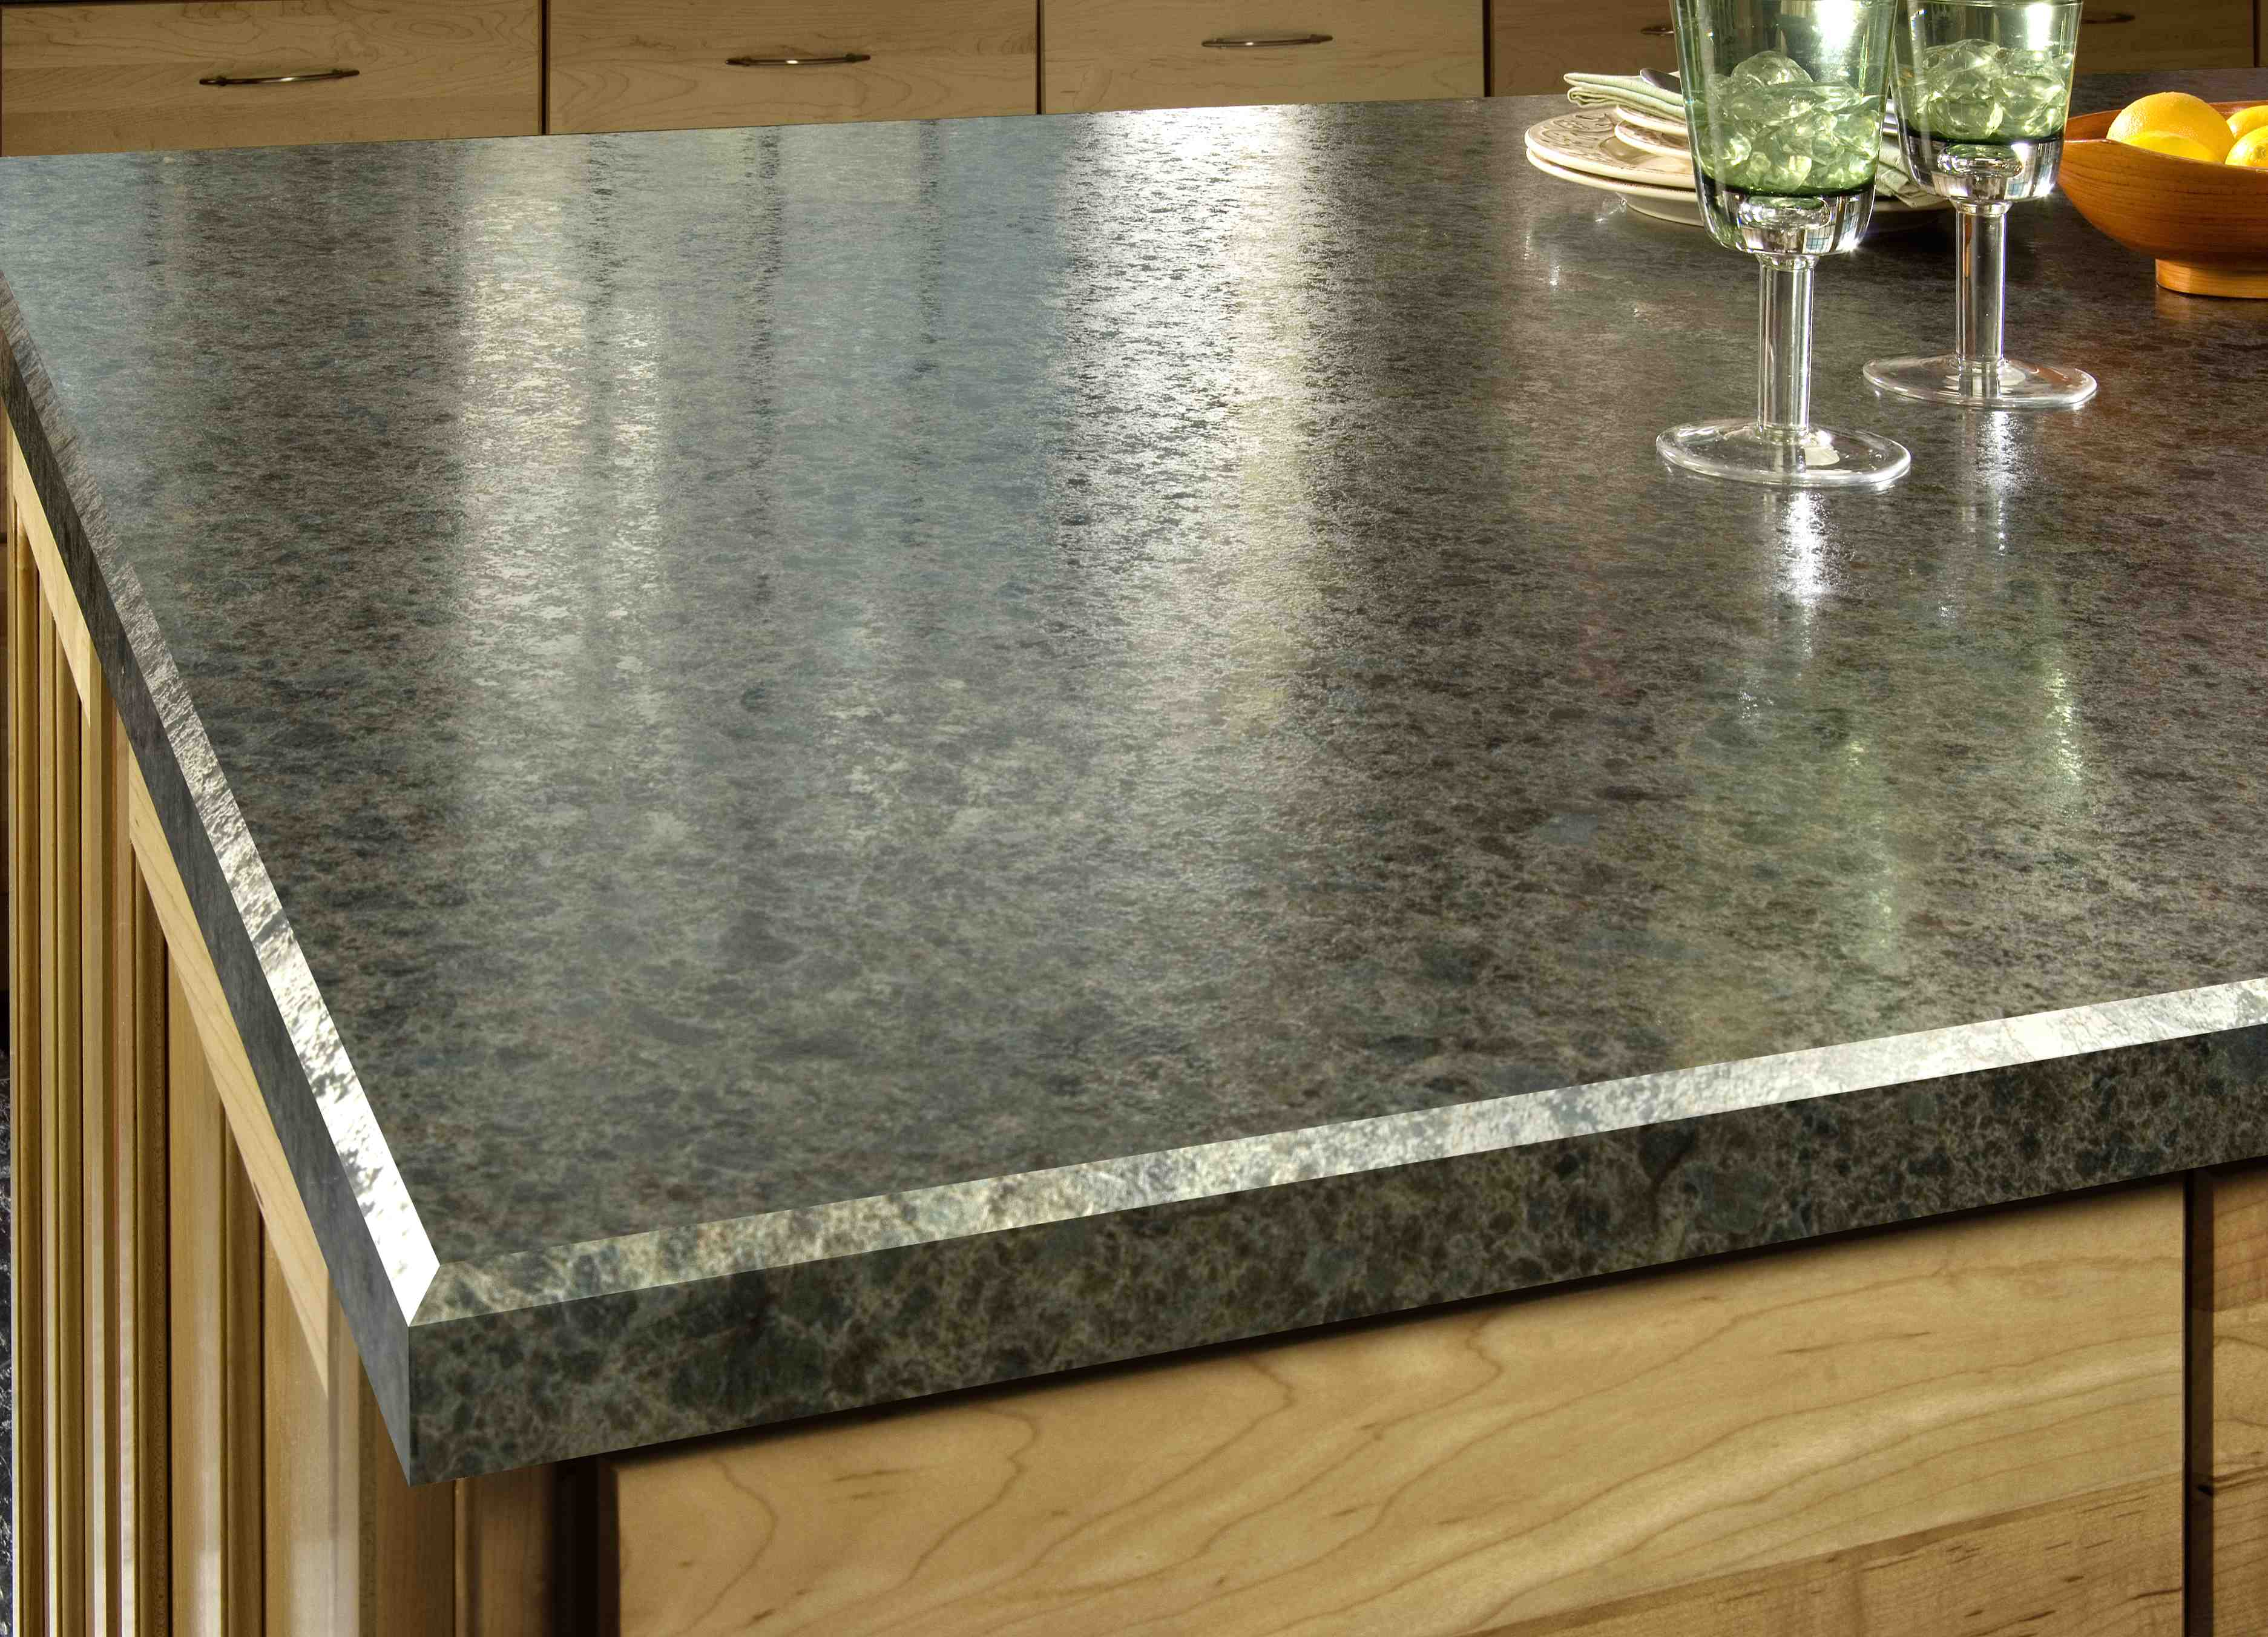 Wilsonart Laminate Kitchen Countertops Countertops The Good The Bad And The Ugly